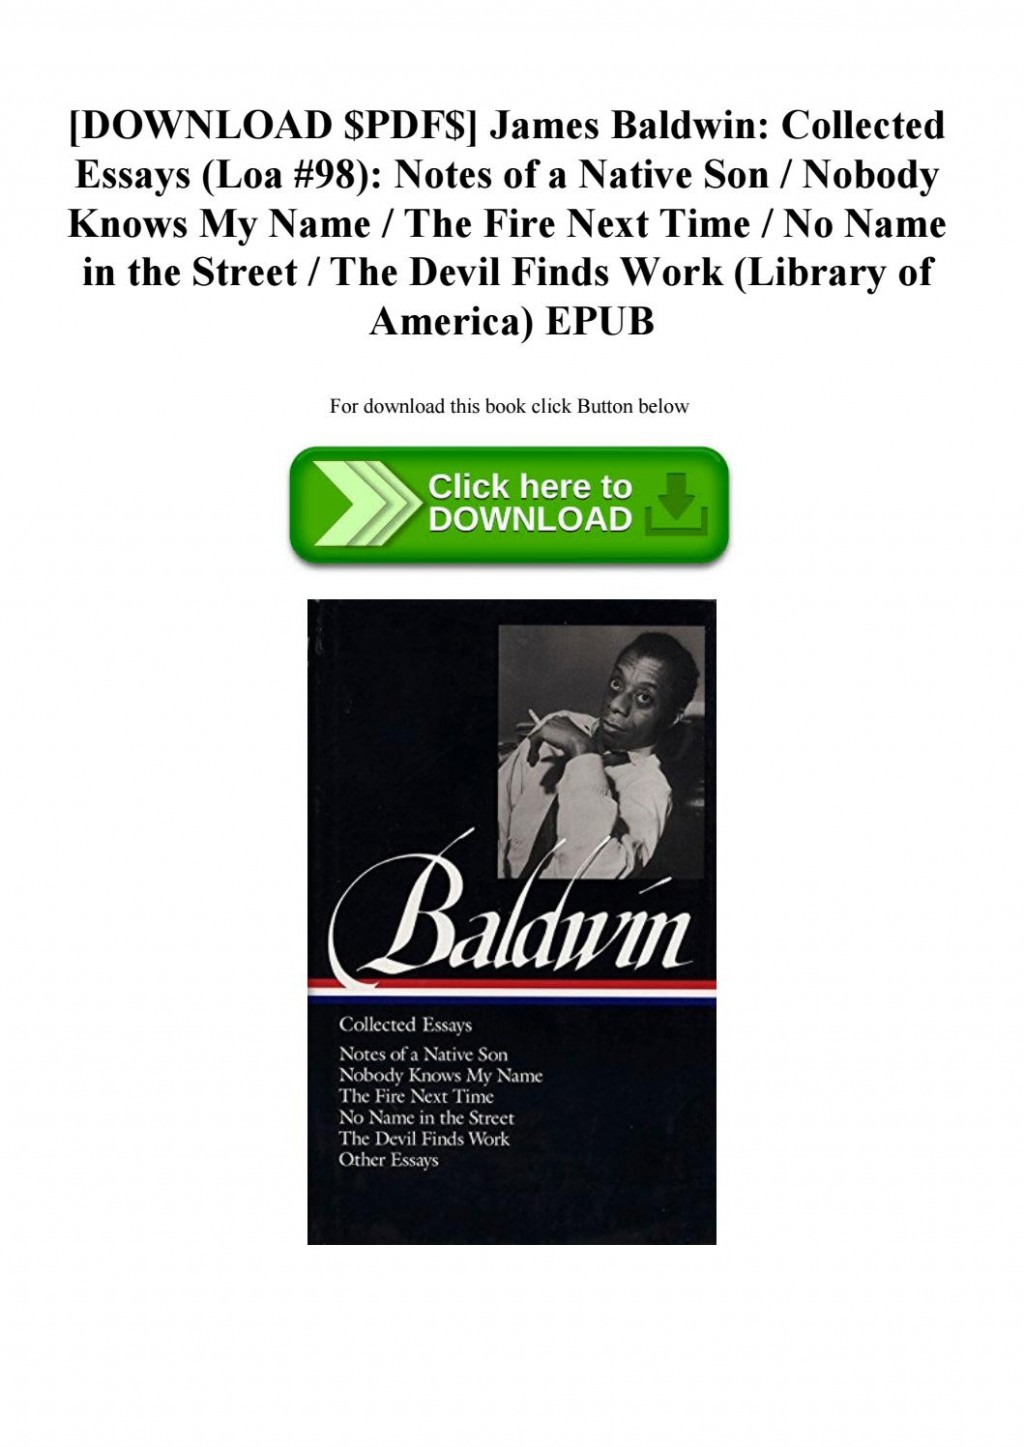 009 Essay Example James Baldwin Essays Pdf Page 1 Imposing Large